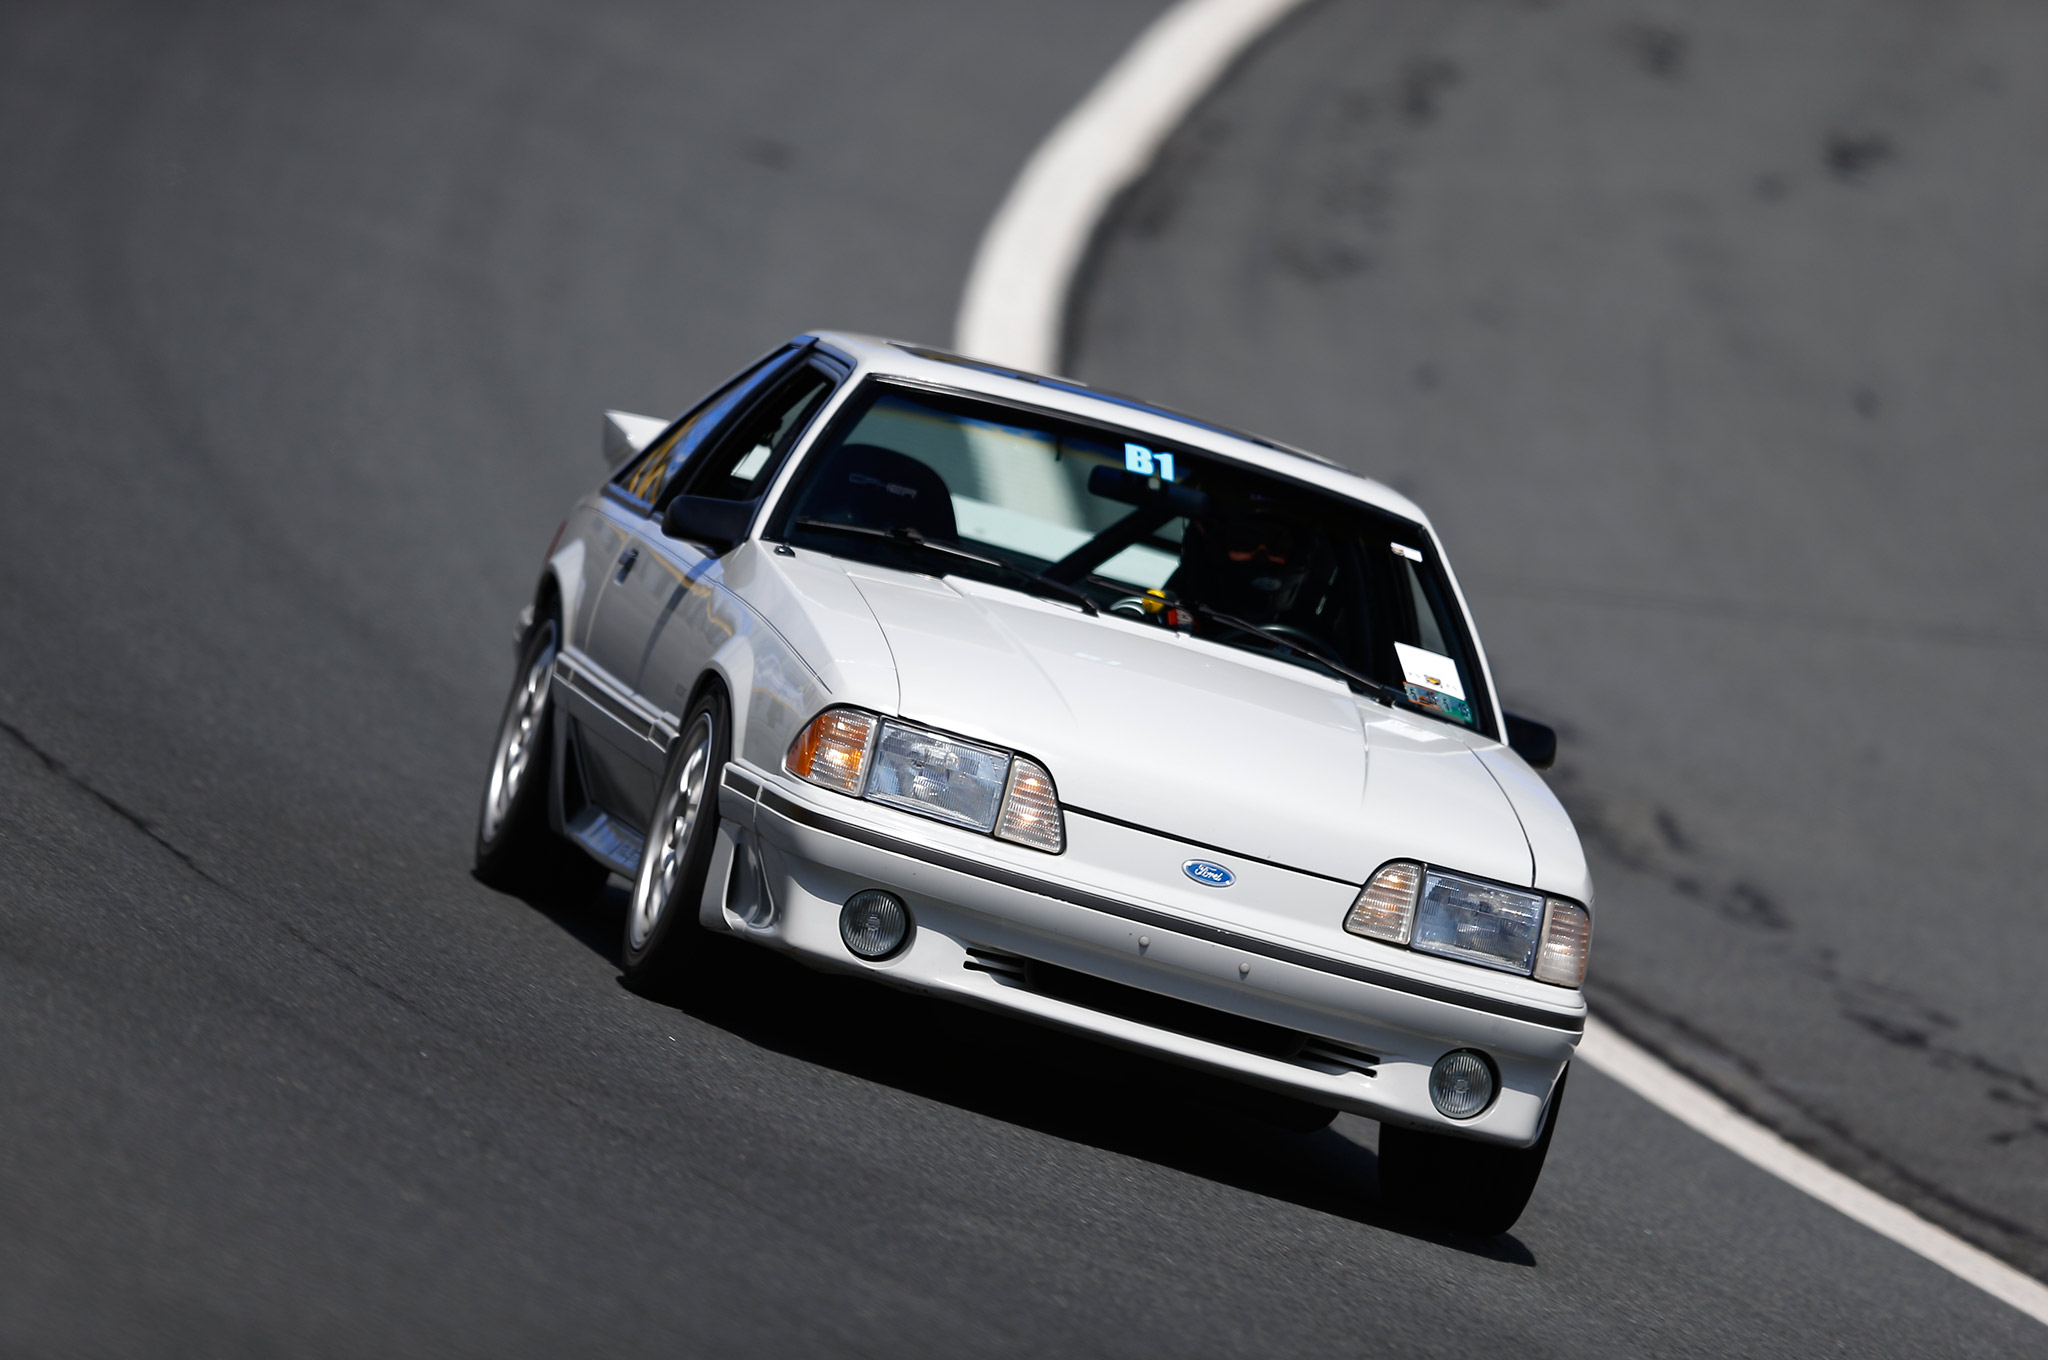 1979 To 1995 Ford Mustang Pushrod Engine History On Track